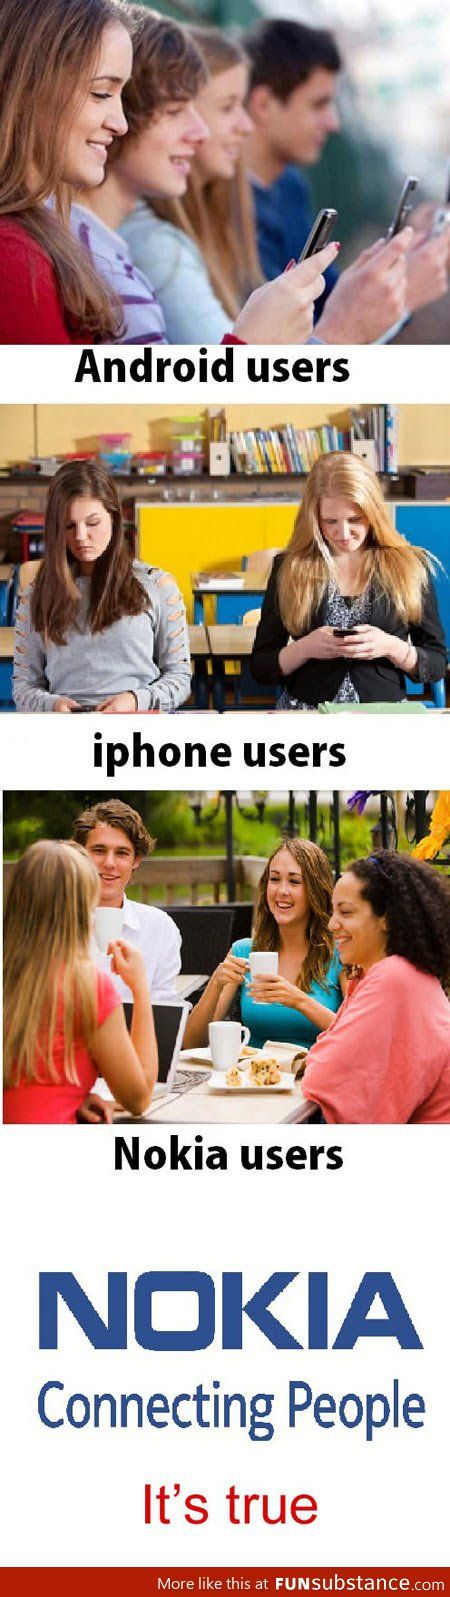 af2c9ce7f6fc86624d91645c76e89559 android funny photos best 25 nokia meme ideas on pinterest super funny, funny,Nokia Connecting People Meme